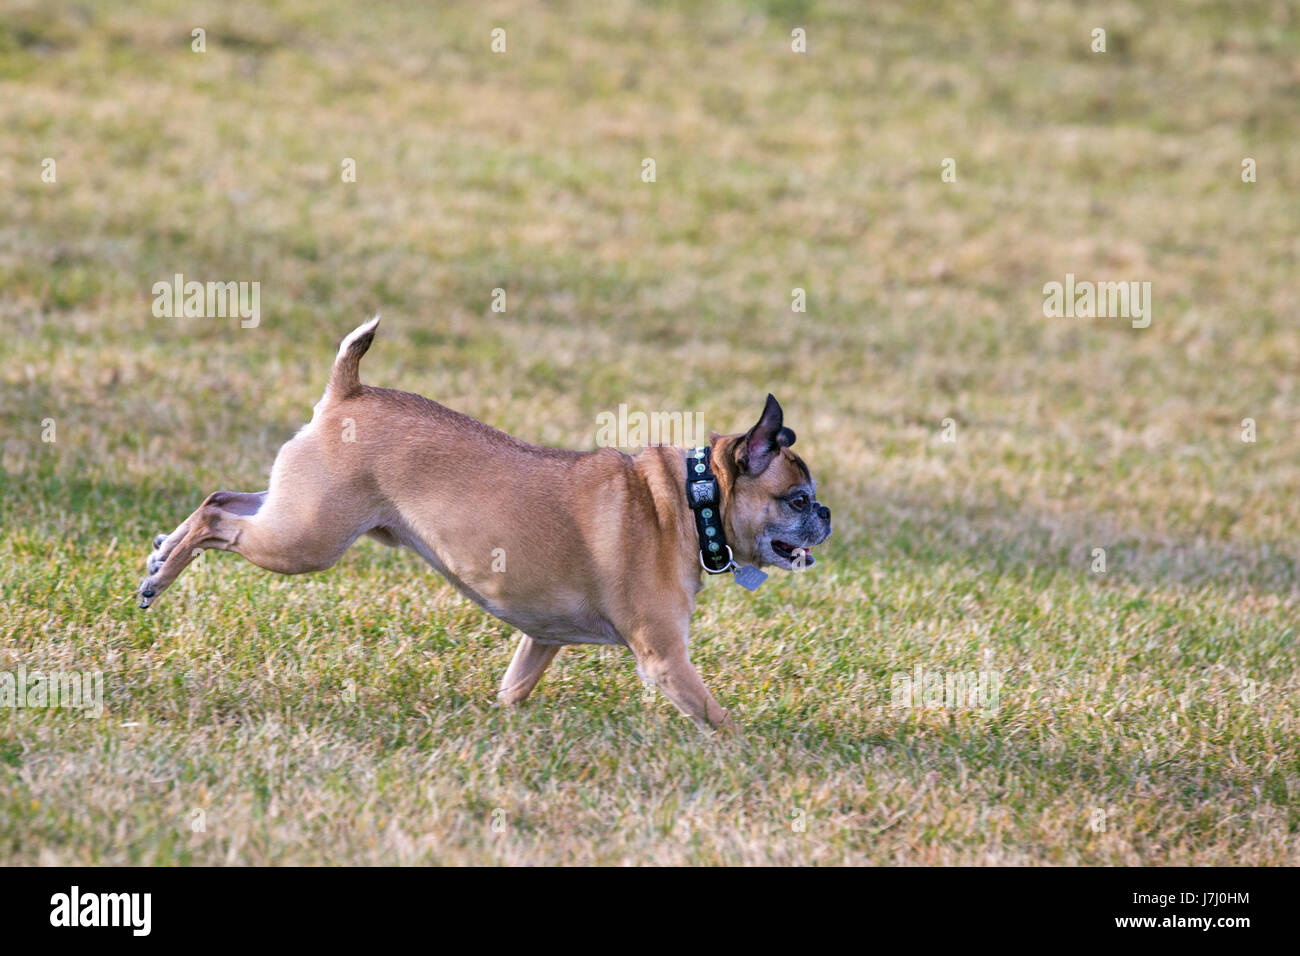 Bugg dog (cross between Boston Terrier and Pug) running free in off-leash area of city park - Stock Image